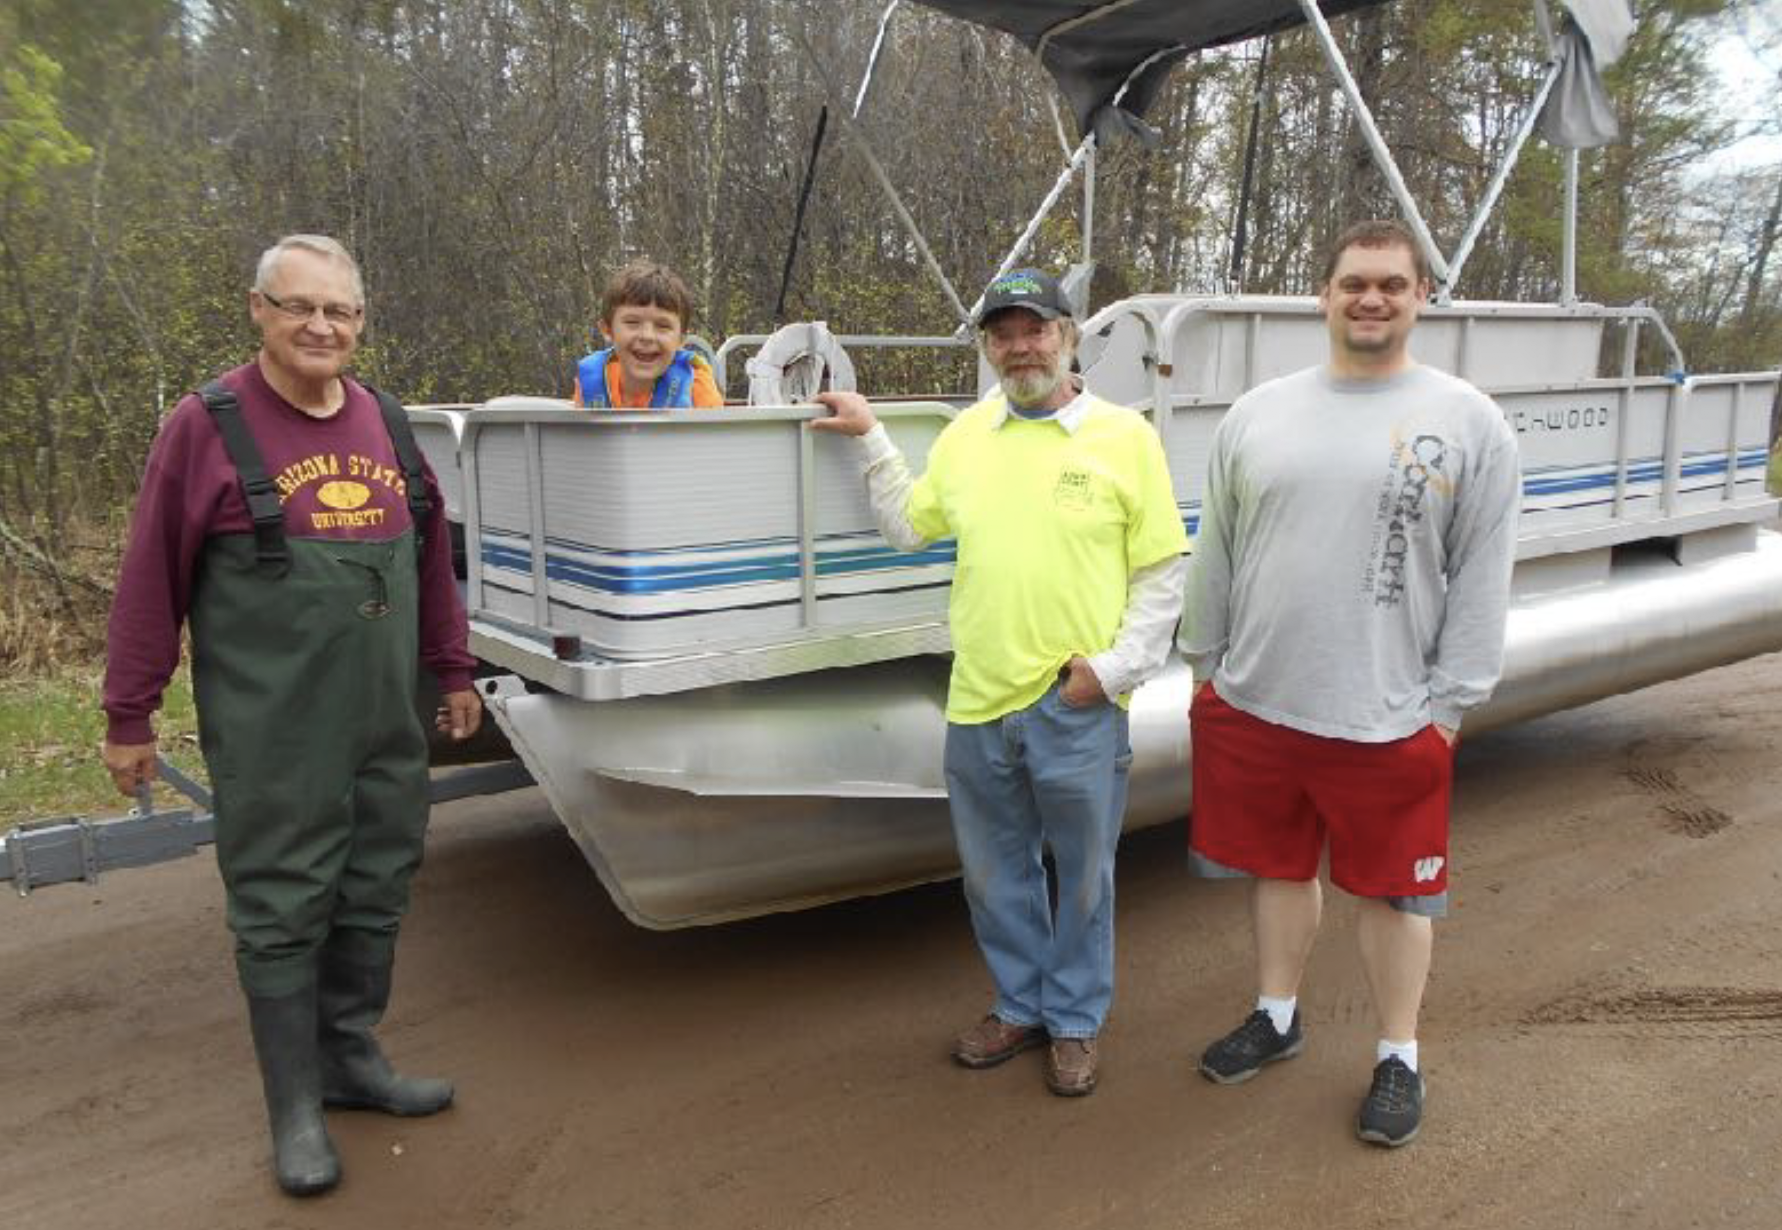 Dick Preiner and family members (Lot 90) launched his pontoon over Memorial Day Weekend. Our weekend's AIS Inspector (in yellow) said most of the Memorial Weekend inspections were of boats that are permanently on Lone Lake, typically not an AIS threat.